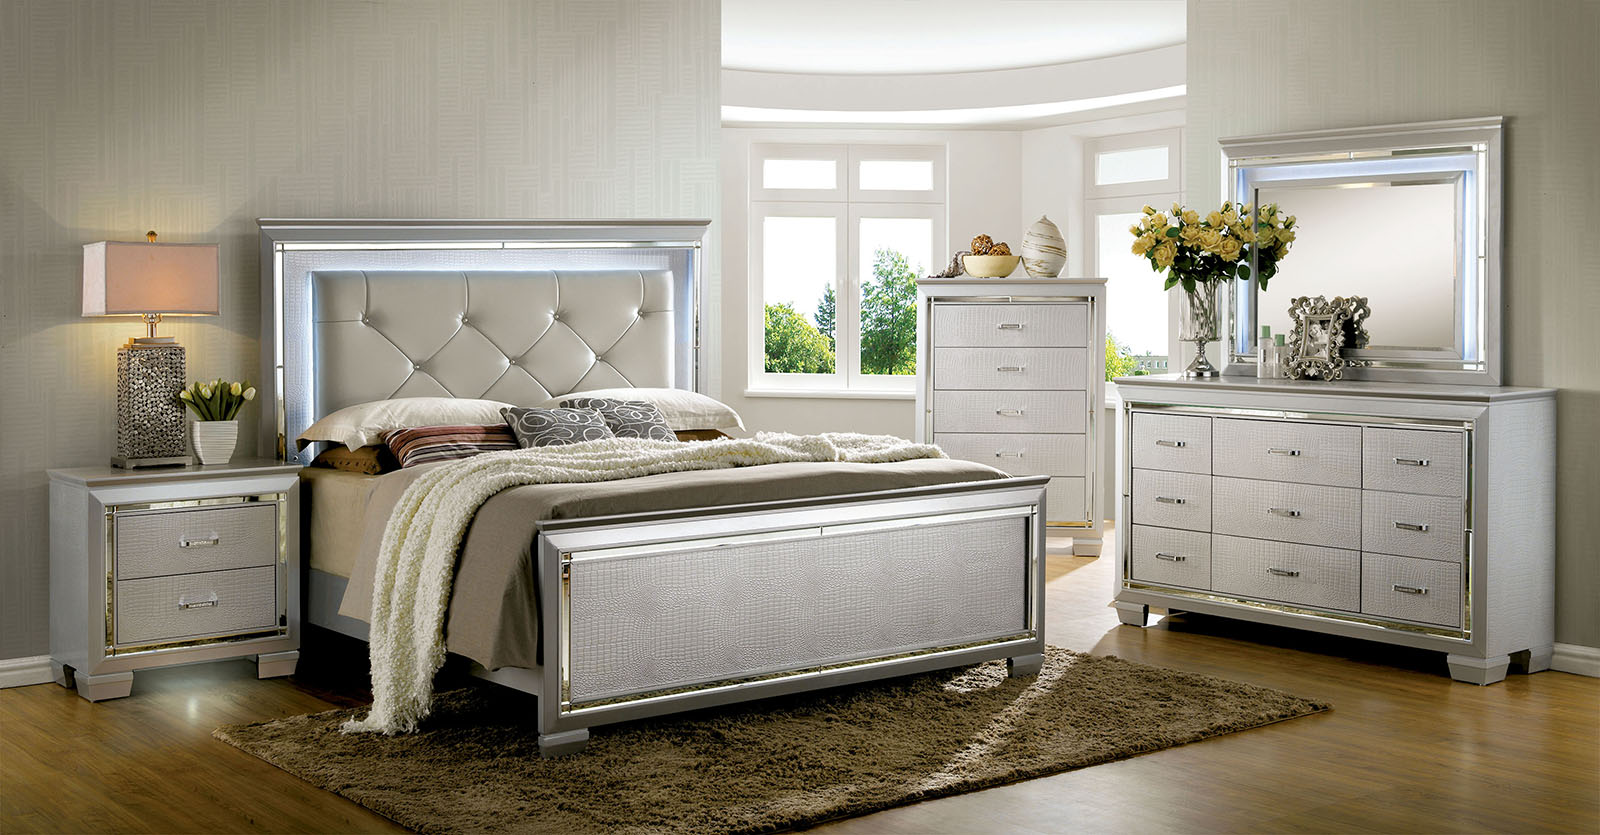 black and silver bedroom furniture. Lightbox Black And Silver Bedroom Furniture E